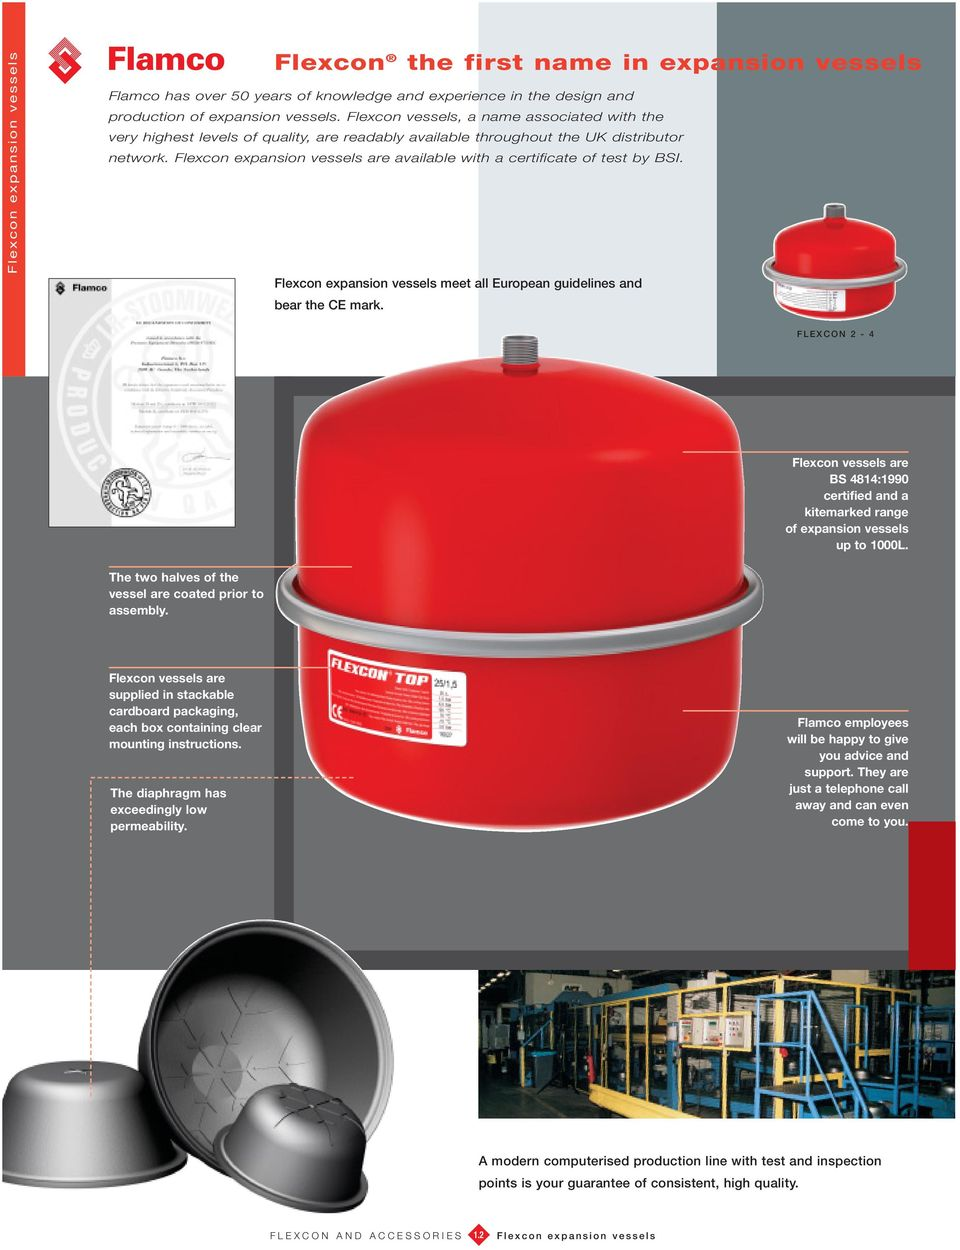 meet all European guidelines and bear the CE mark. FLEXCON 2-4 Flexcon vessels are S 4814:1990 certified and a kitemarked range of expansion vessels up to 1000L.